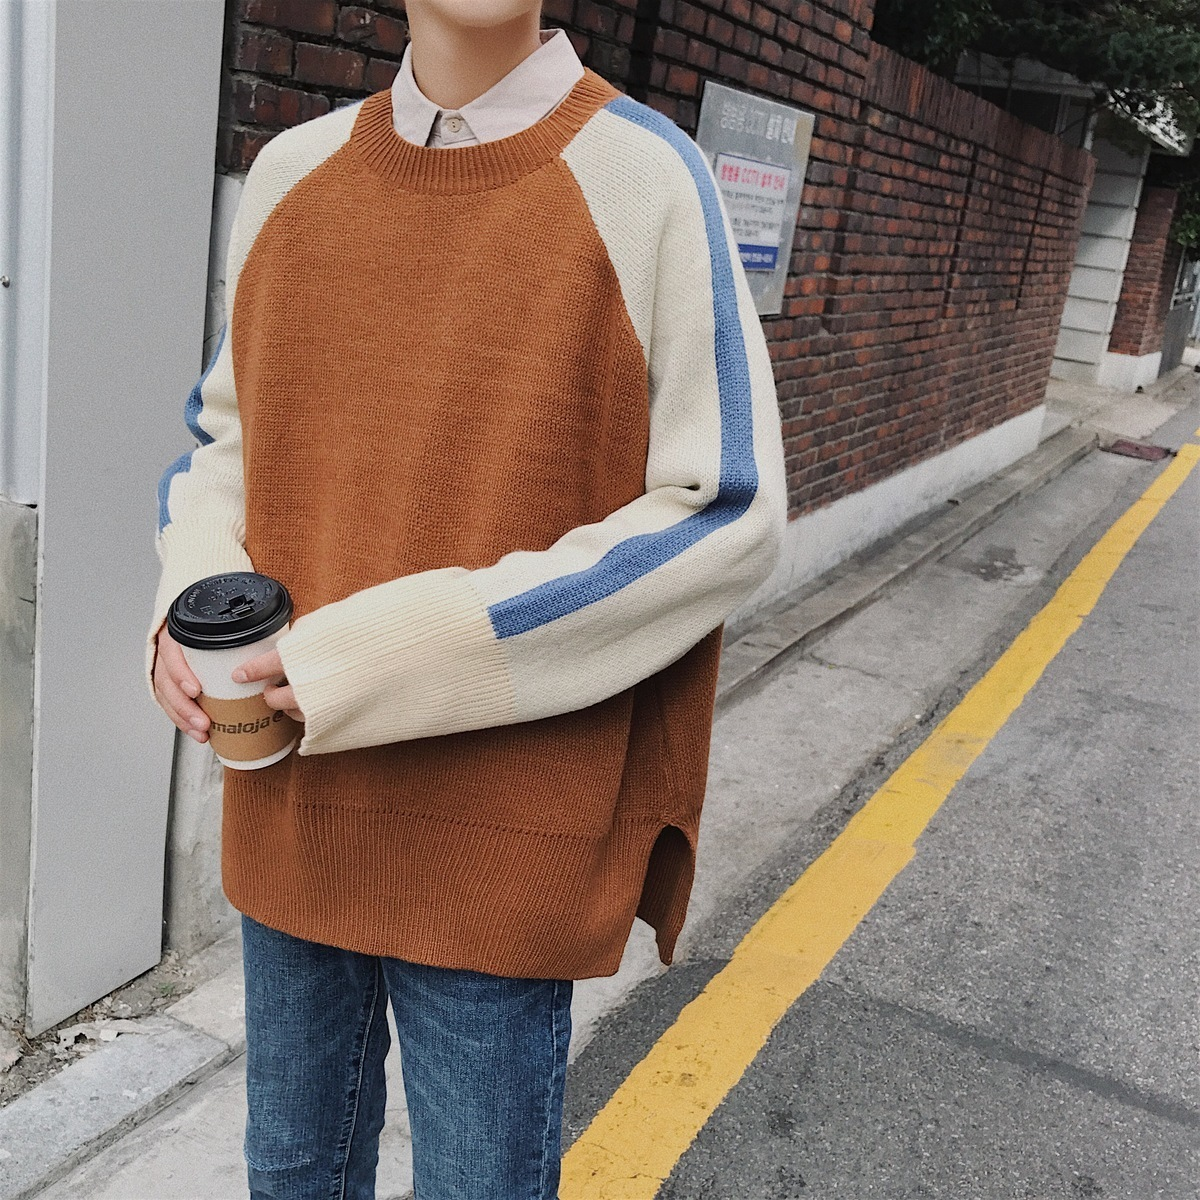 2018 Korean Style New Mens Fashion Splice Color Loose Causal  Coats Blue/Khaki Woolen Pullover Casual Cashmere Sweater Size M  XLPullovers